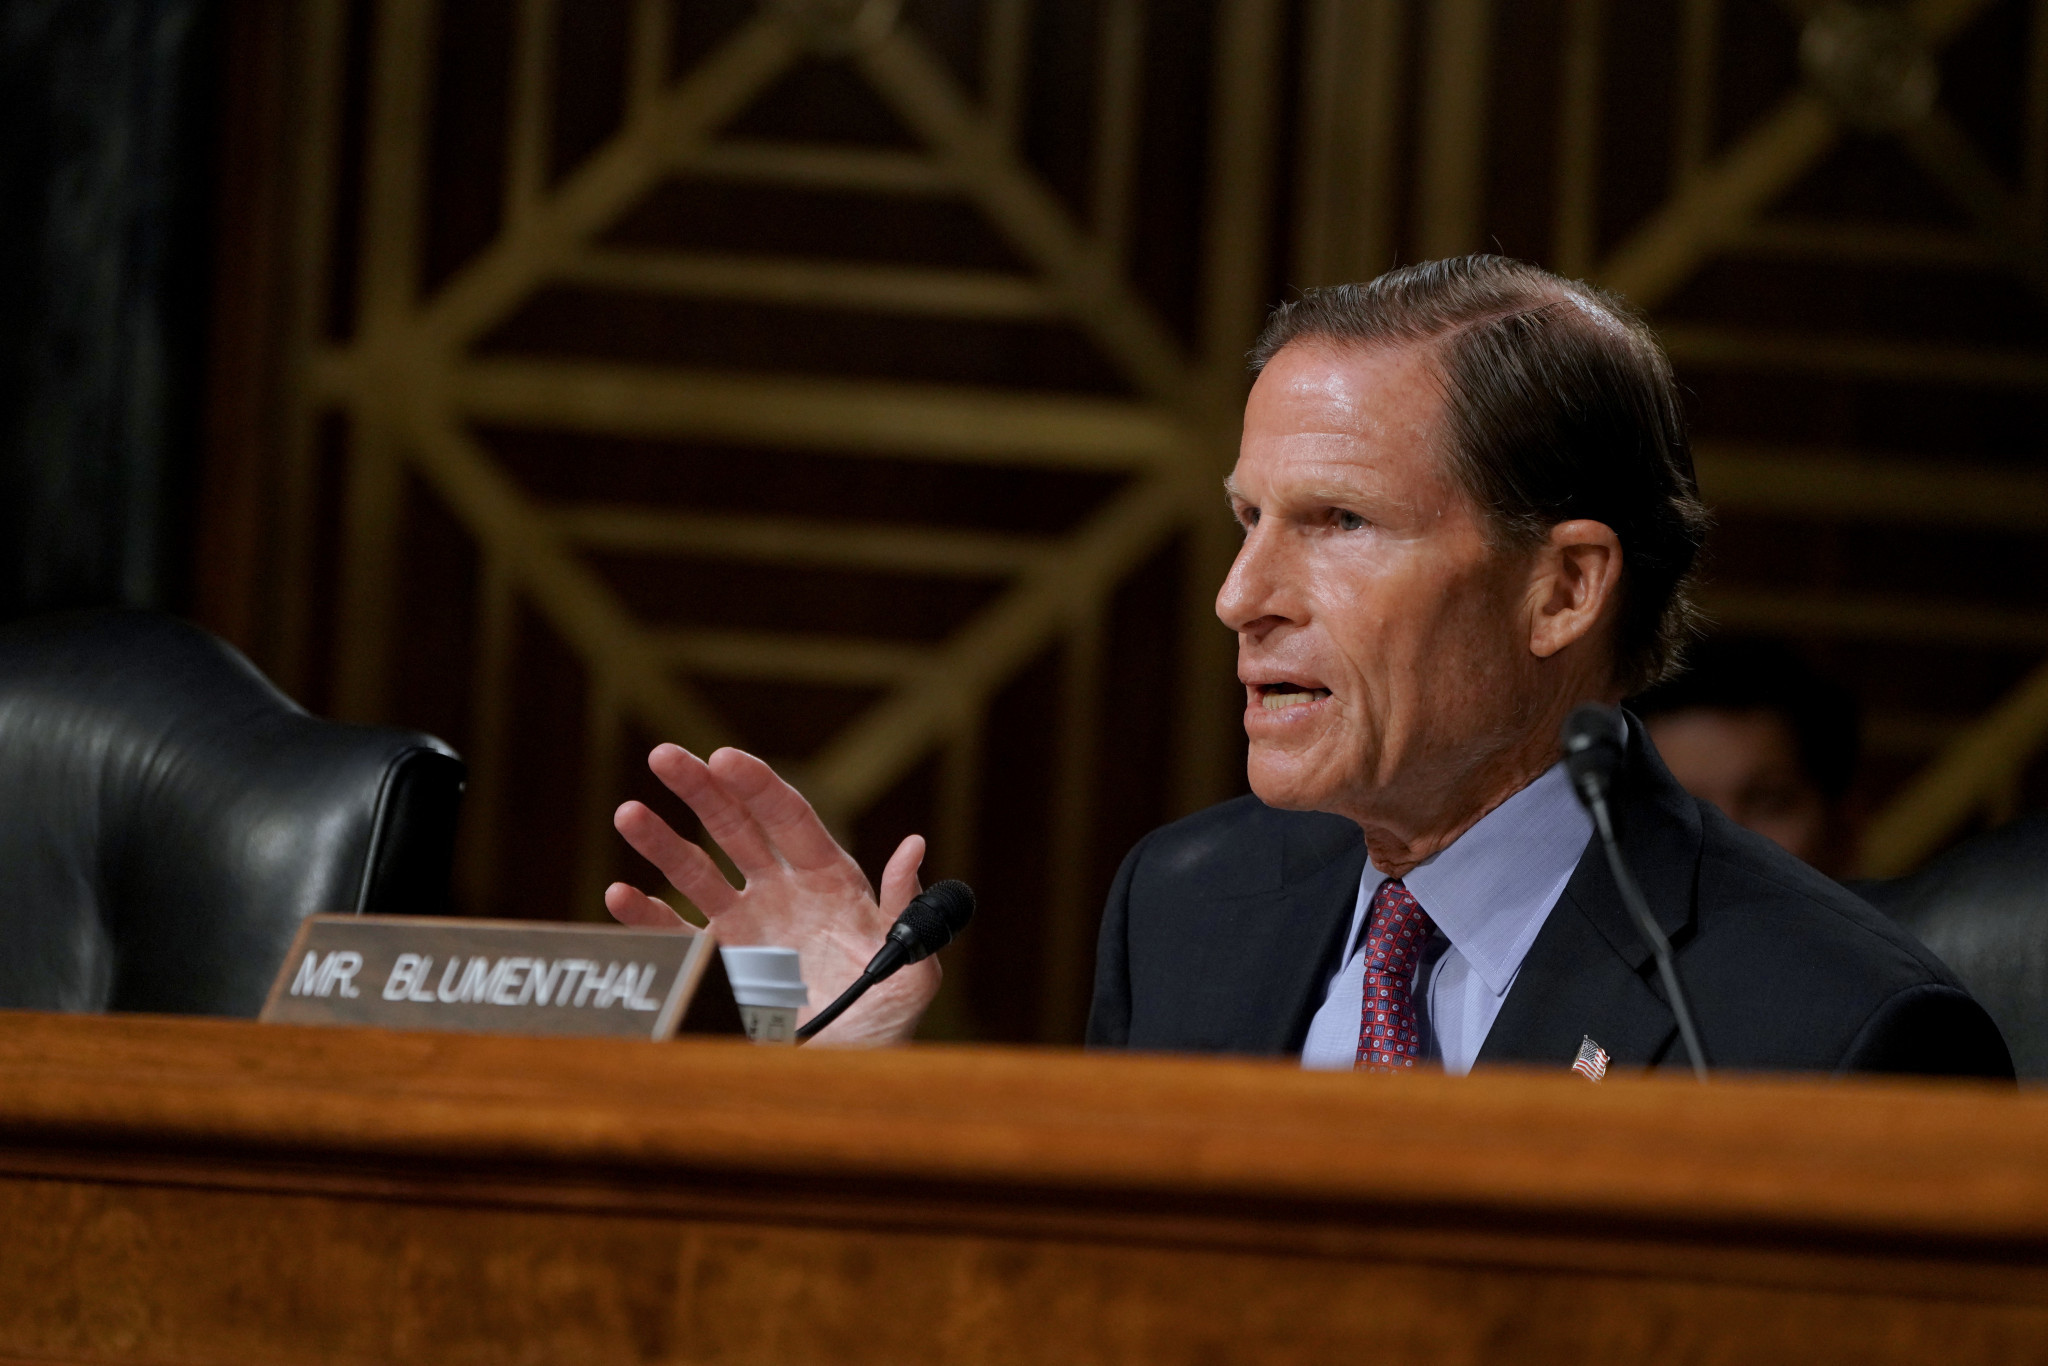 Two United States Senators, including Richard Blumenthal, have carried out a damning 18-month investigation into the US Olympic and Paralympic Committee ©Getty Images